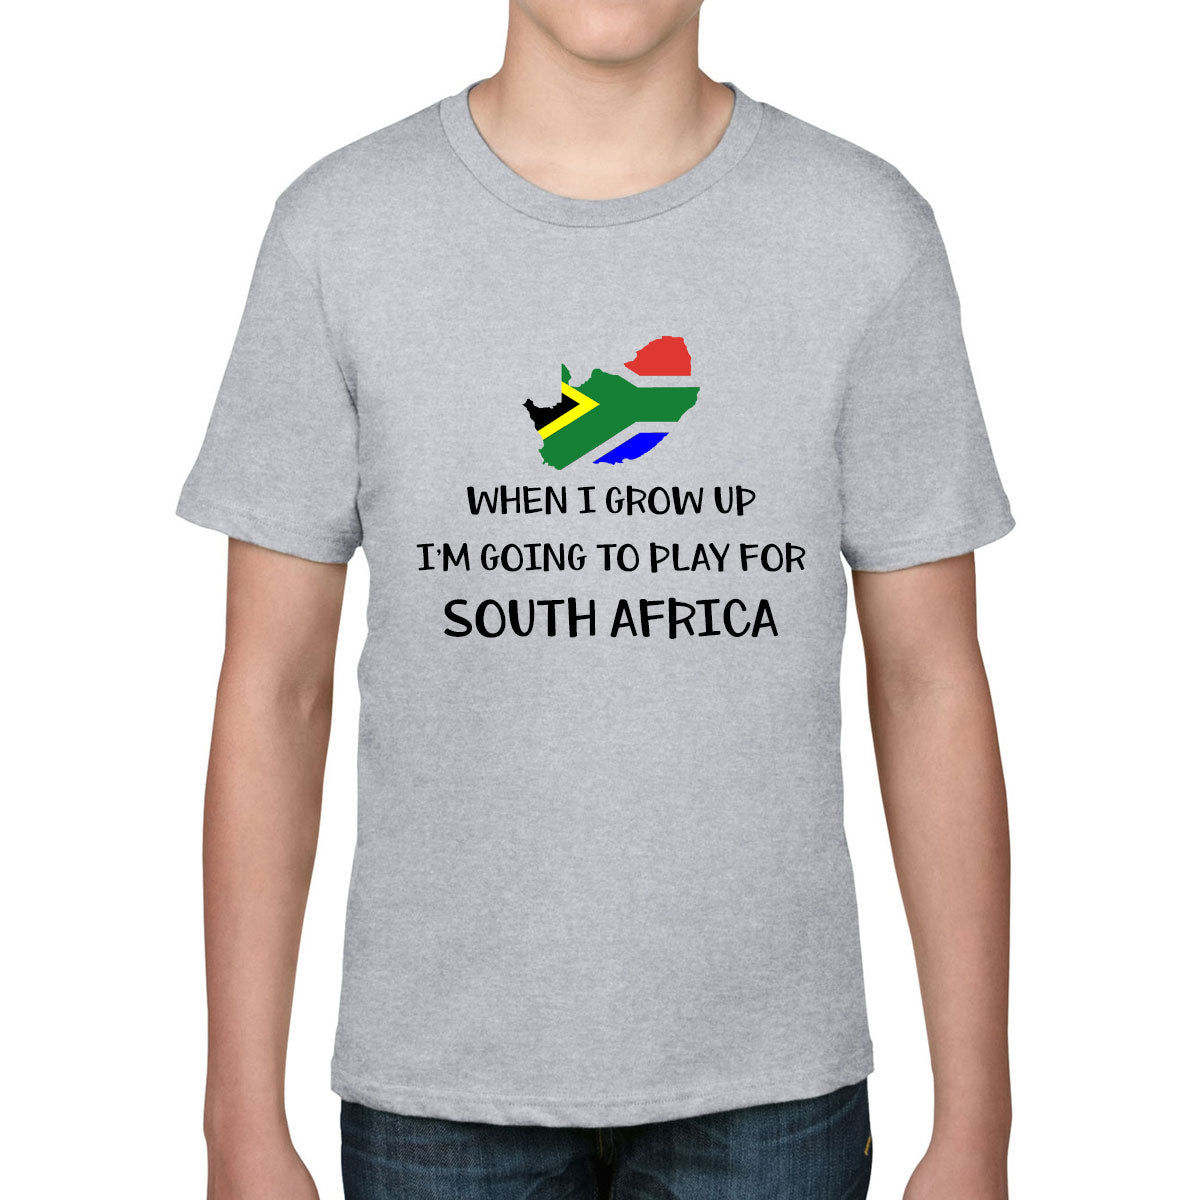 Kid's When I Grow Up, I'm Going To Play For South Africa Rugby Tee - First XV rugbystuff.com